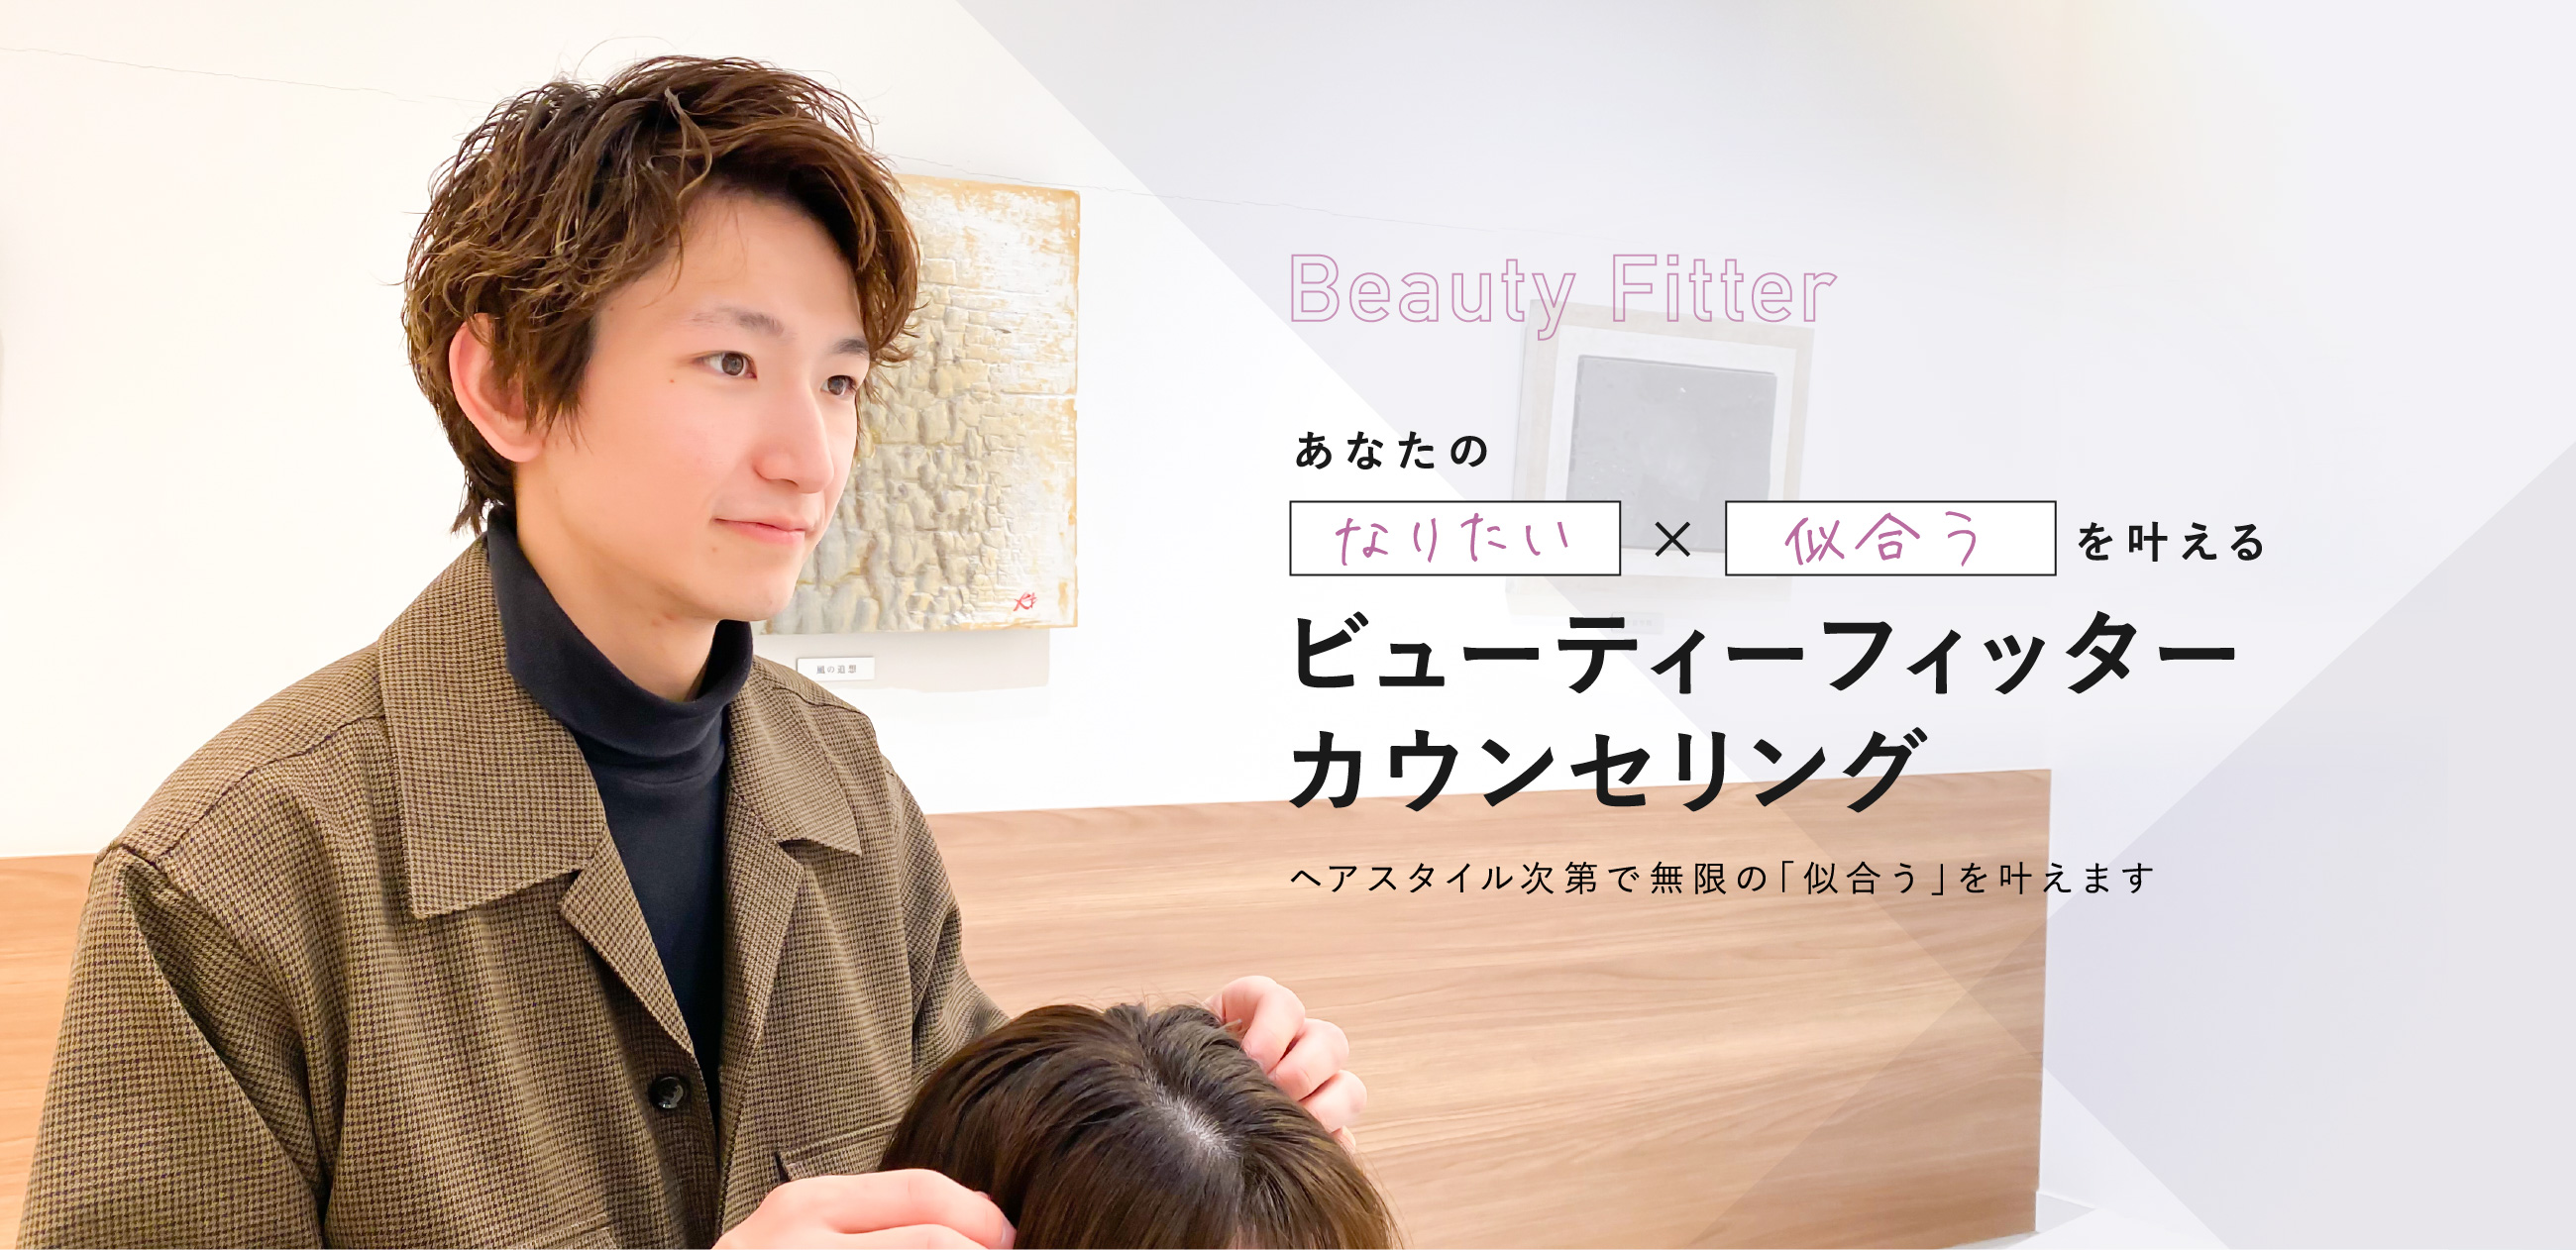 Beauty Fitter